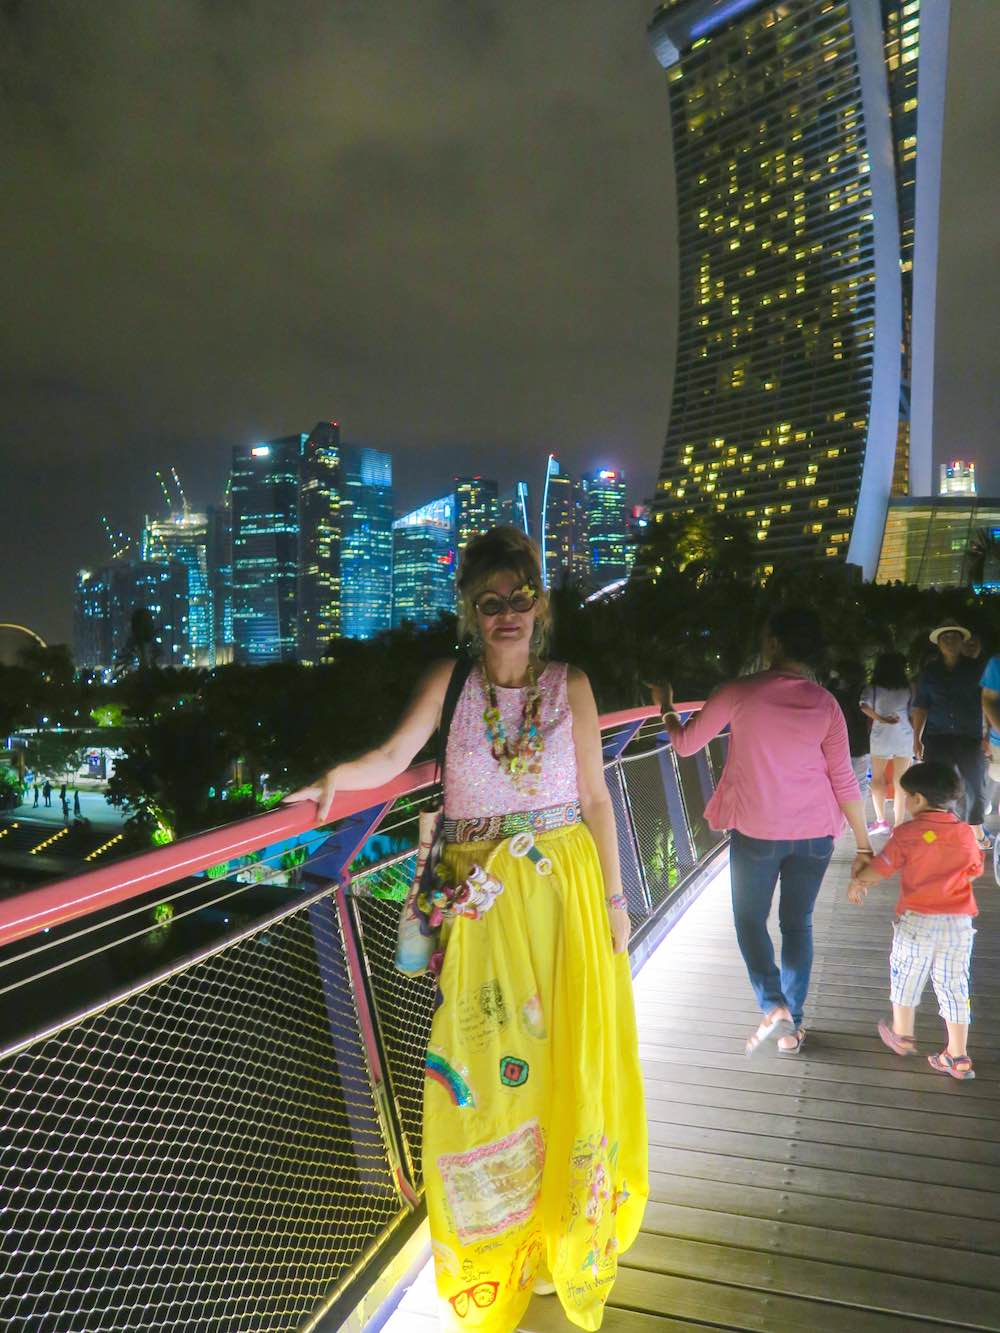 Woman on bridge in Gardens by the Bay Singapore |curlytraveller.com